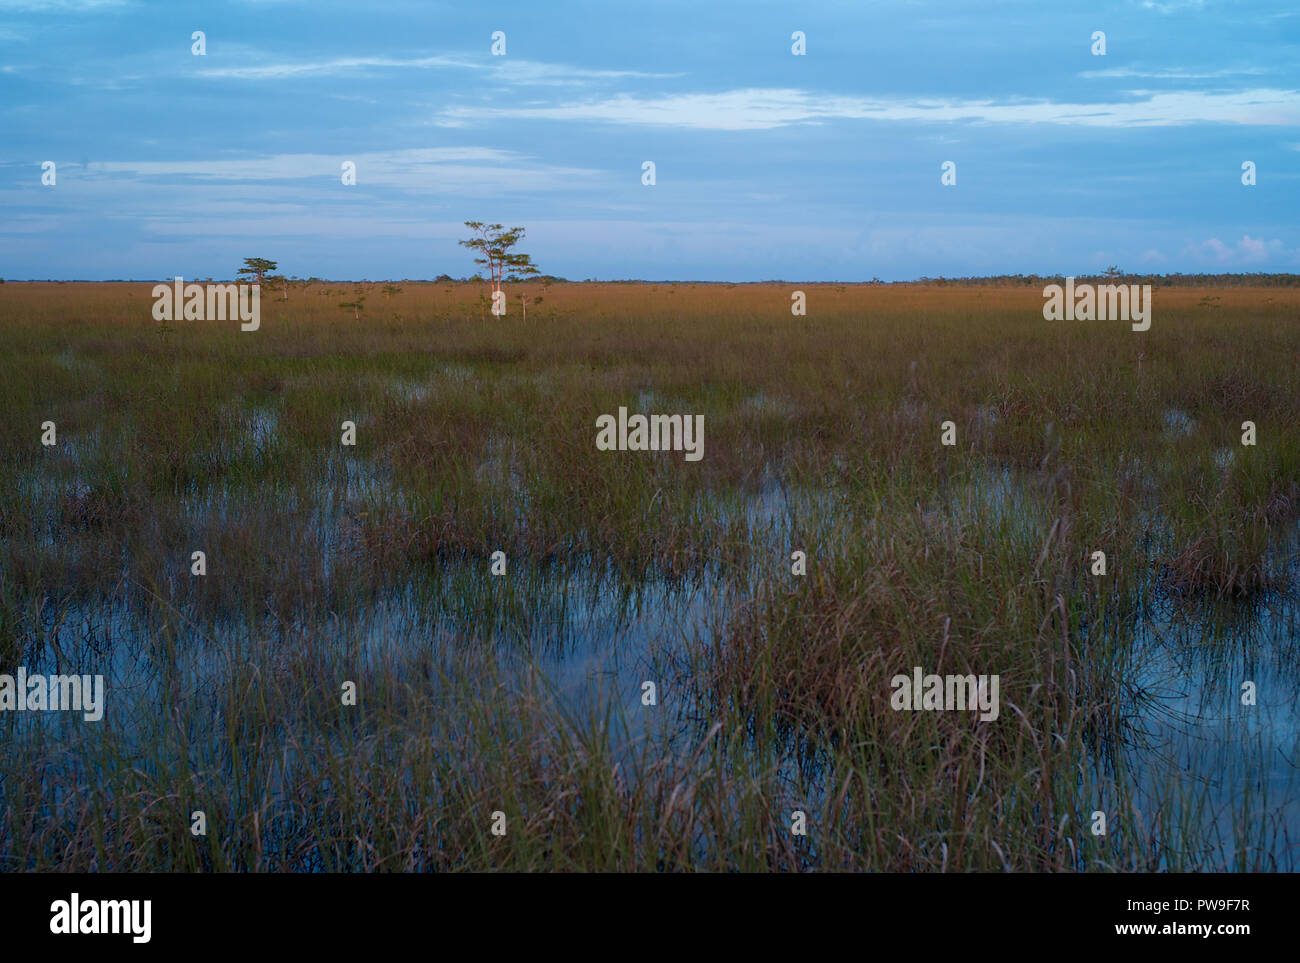 The Marshland of the Everglades in the Evening with Cypress Trees and Sawgrass - Stock Image